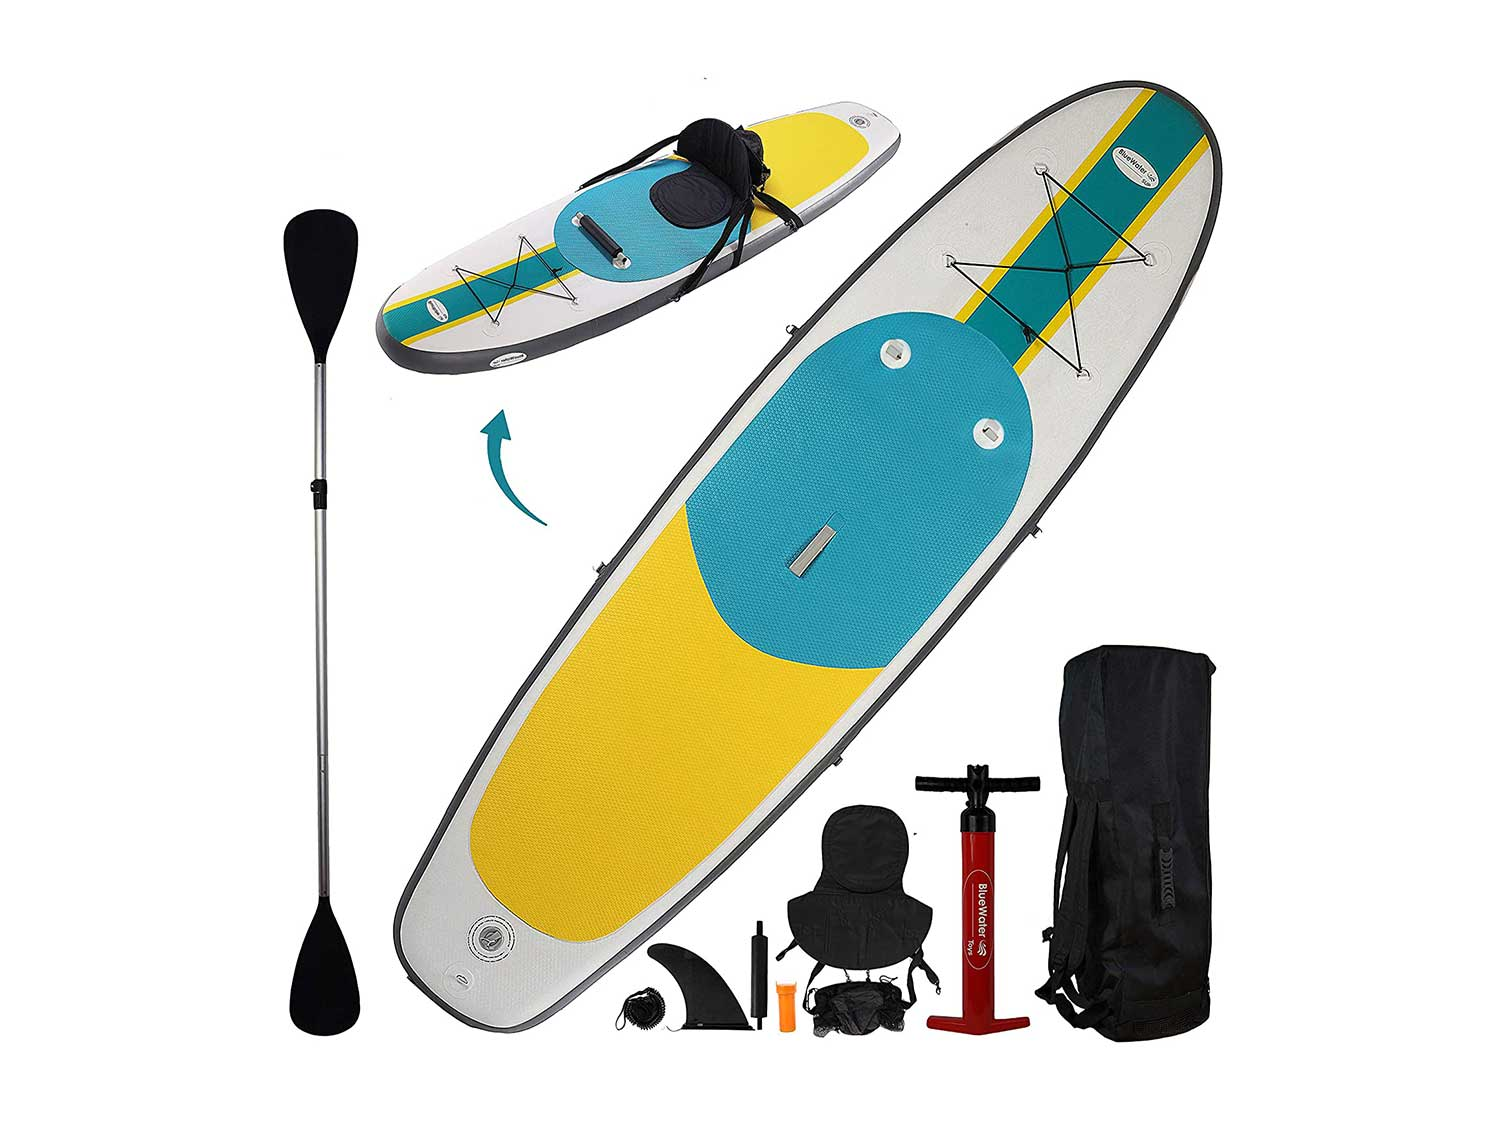 10' Inflatable Stand Up Paddle Board / Kayak And SUP! (6 Inches Thick, 32 Inch Wide Stance Width)  11-Piece Accessory Set That Includes Convertible Paddle, Kayak Seat, Travel Backpack, And More!